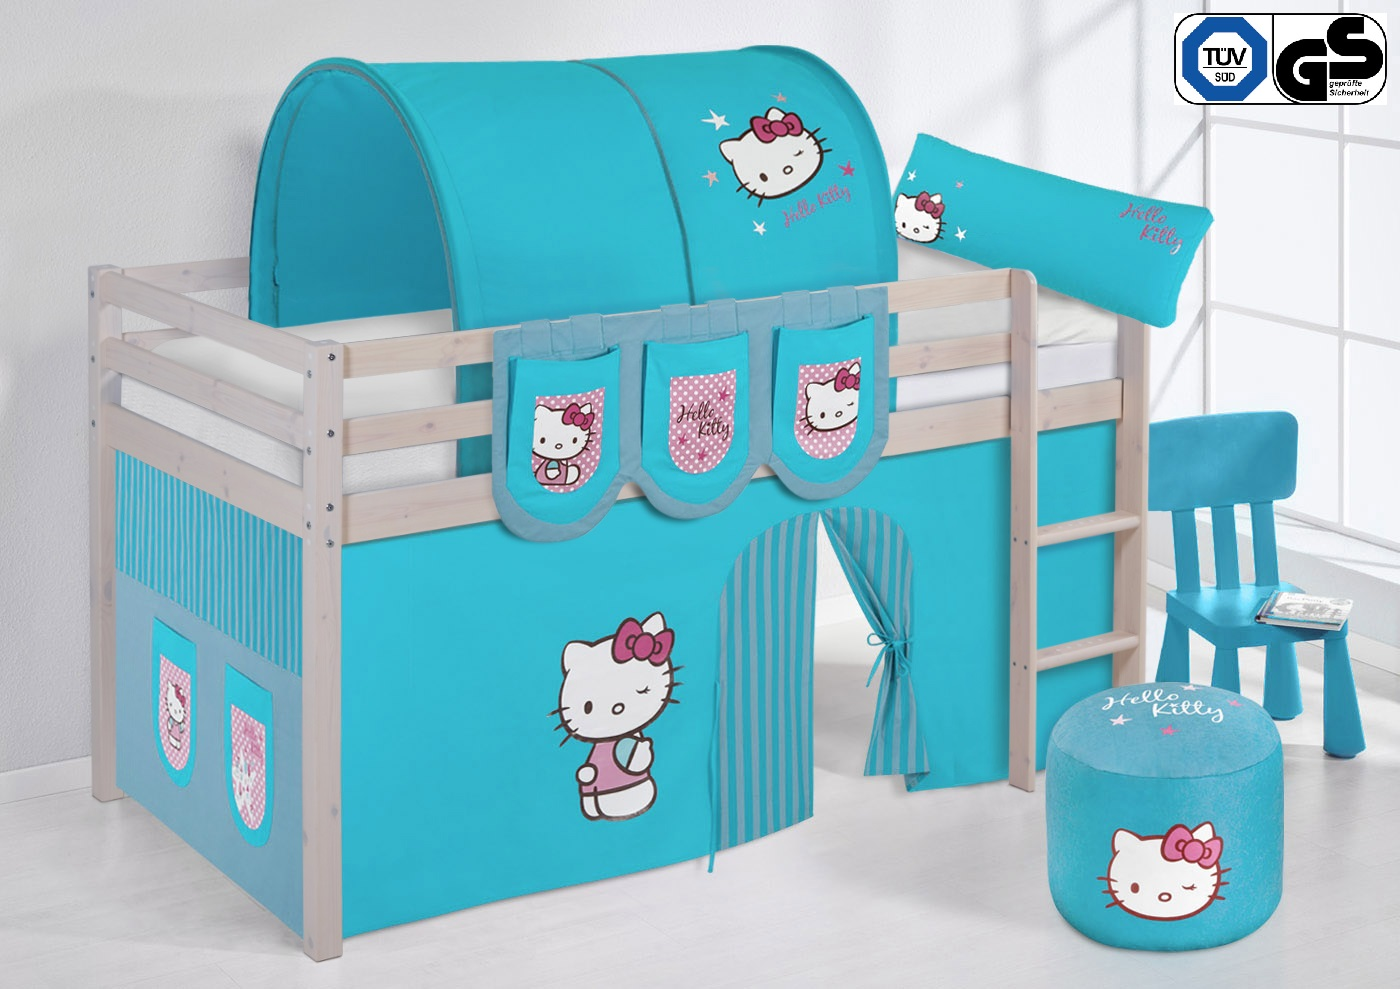 spielbett hochbett kinderbett kinder bett nele kiefer vorhang t v gs gepr ft ebay. Black Bedroom Furniture Sets. Home Design Ideas